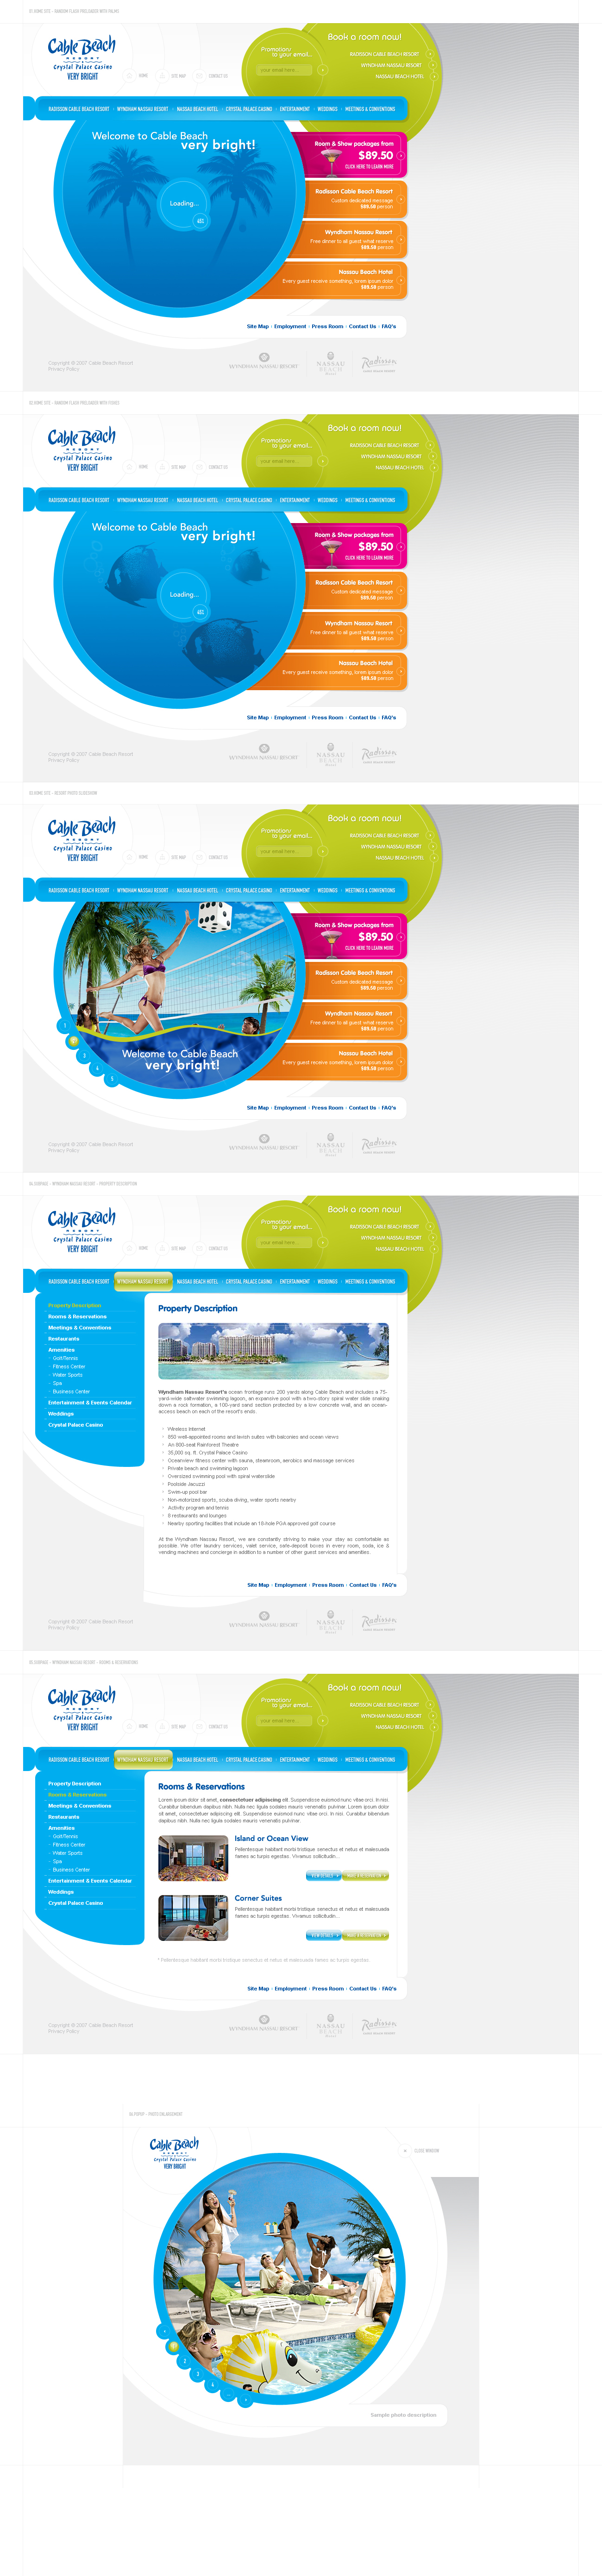 Cable Beach Resort by gregbike